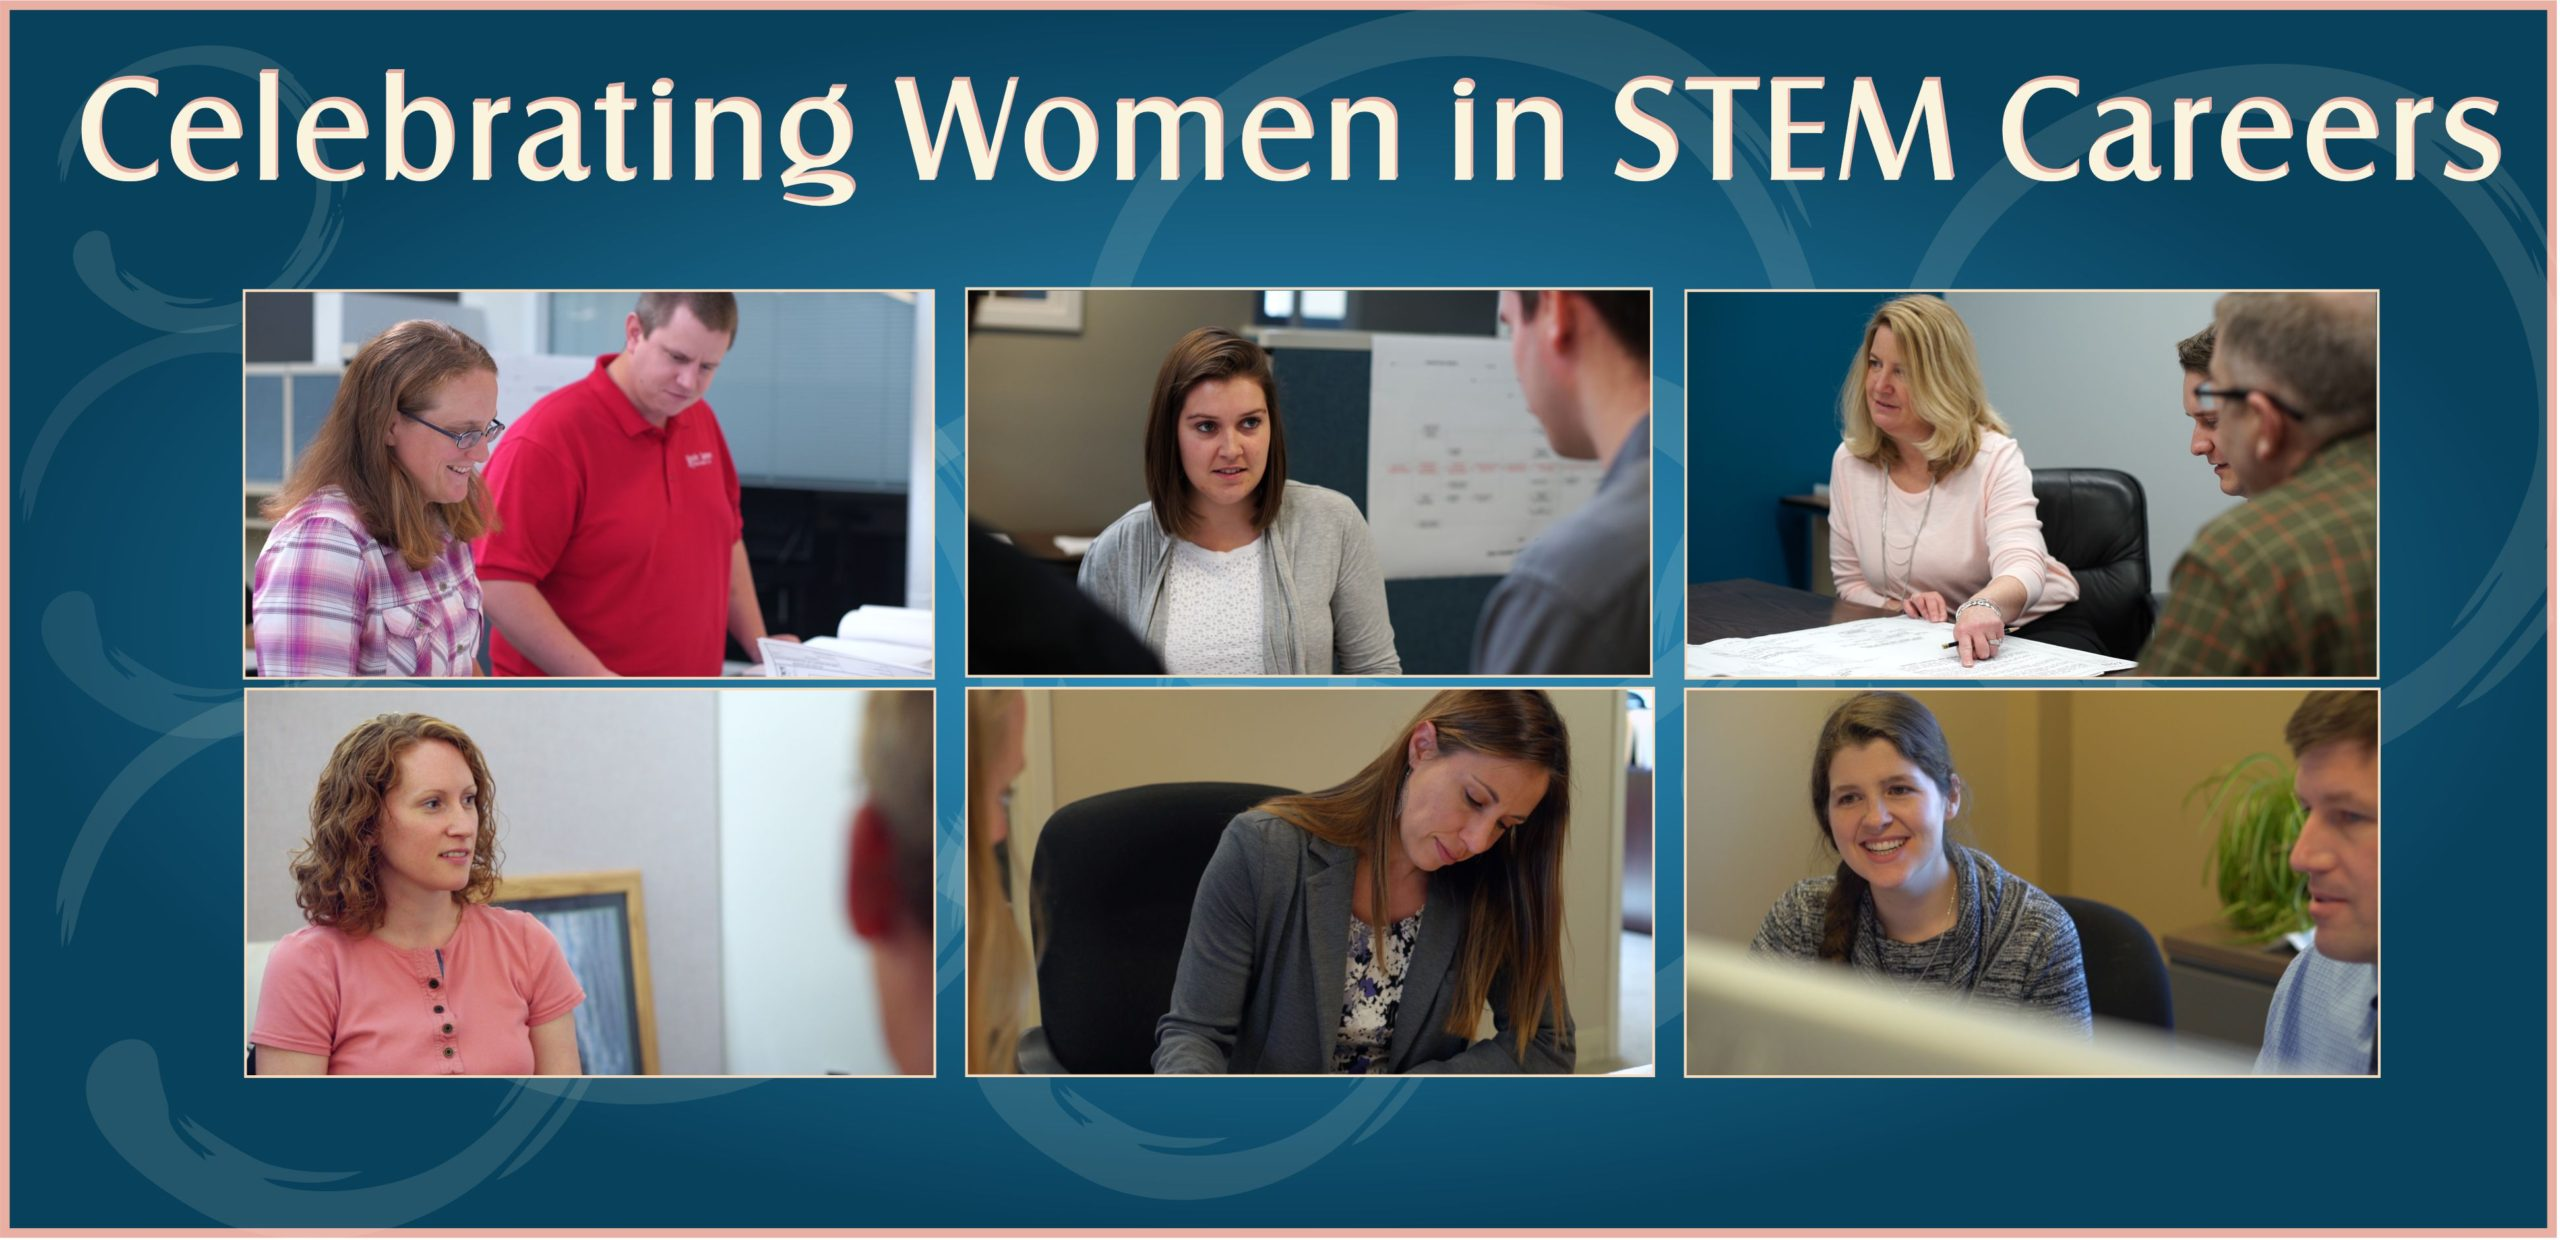 6 images in a blue box with various female engineers working and text says Celebrating Women in STEM Careers